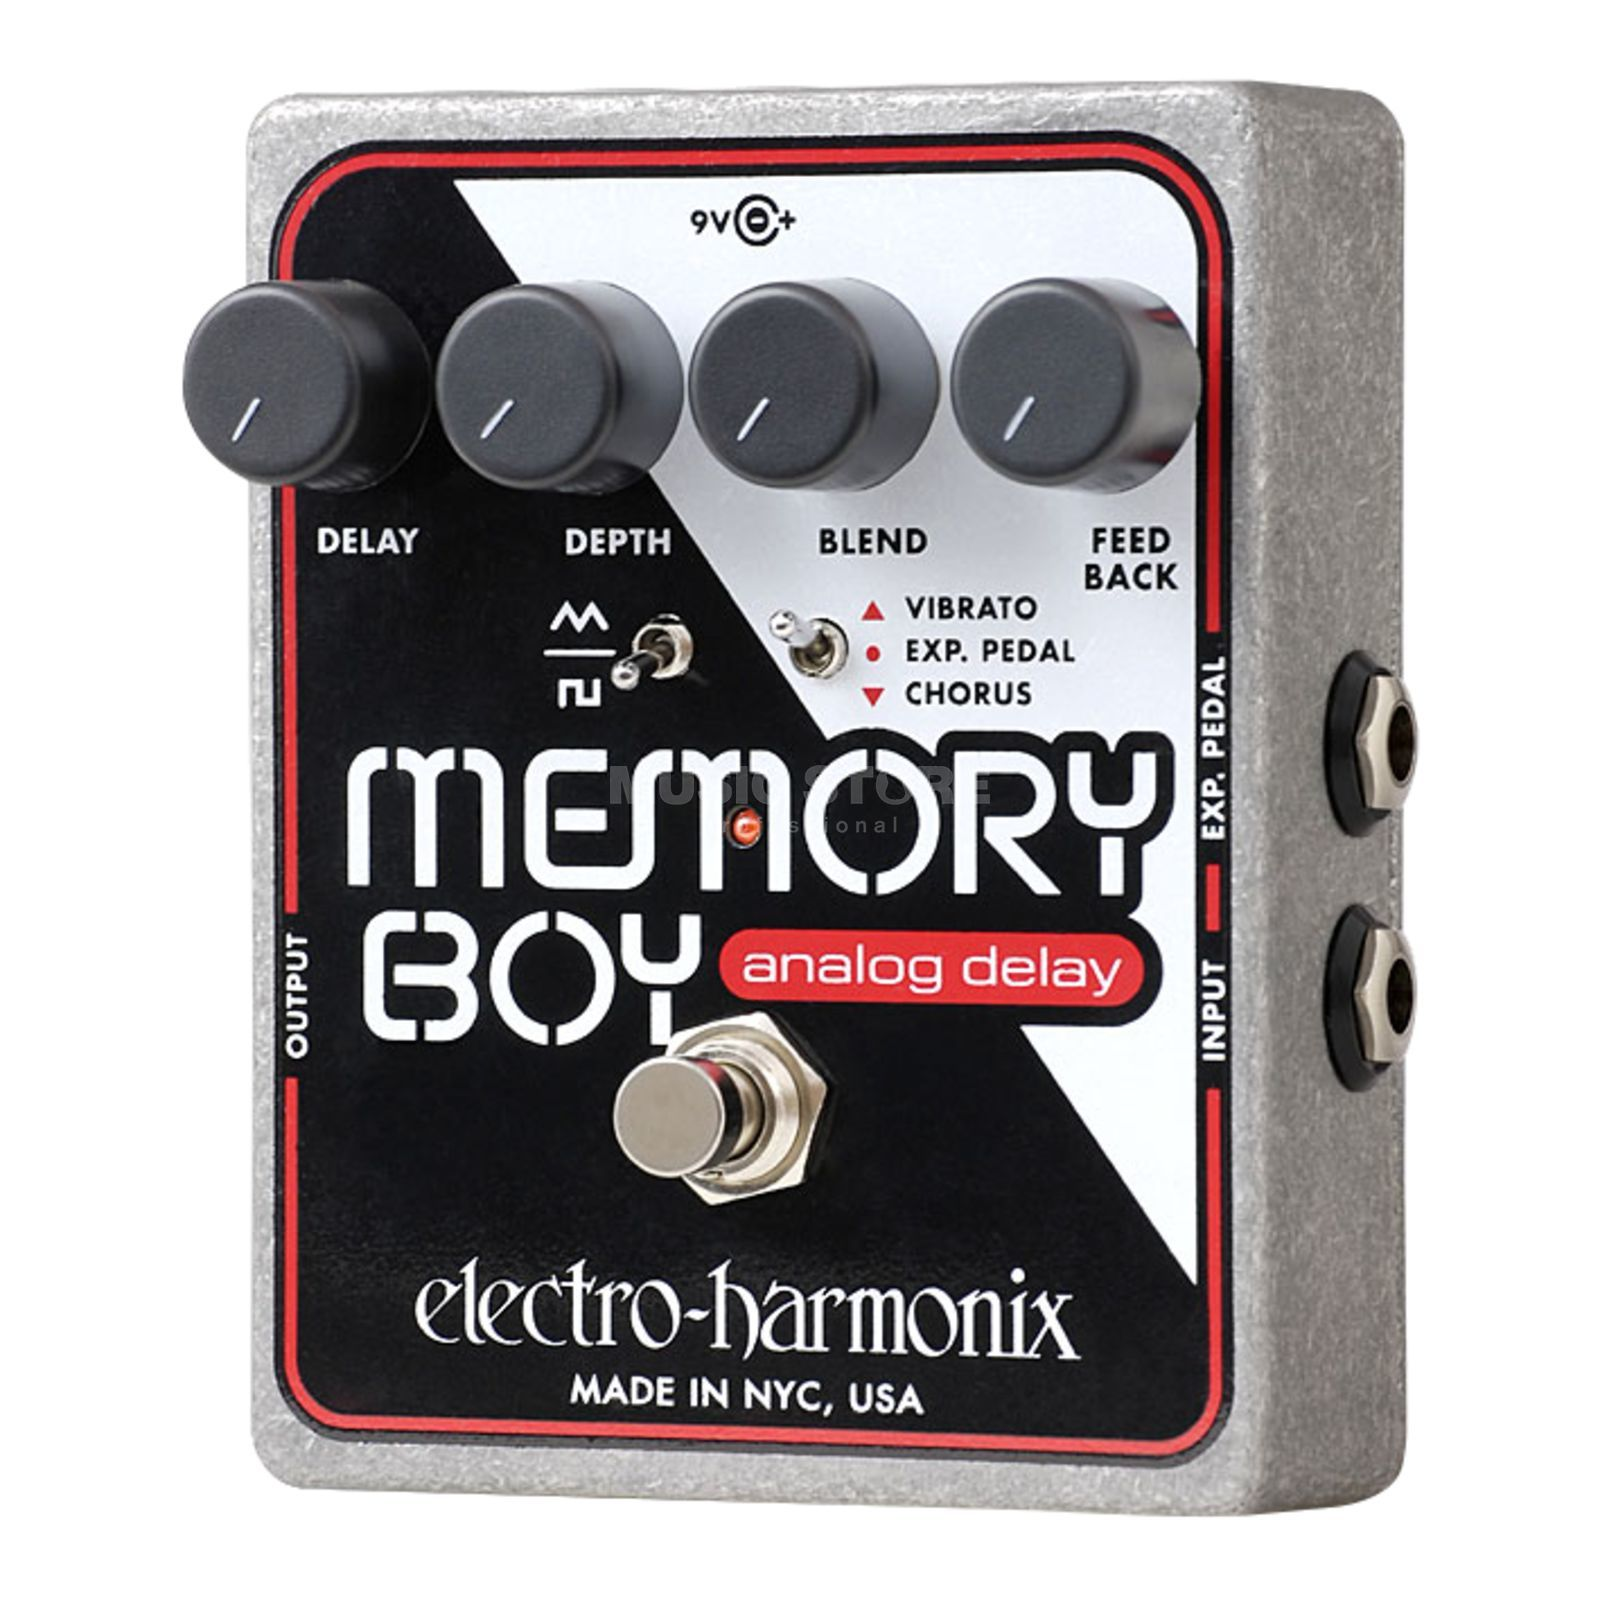 Electro Harmonix Memory Boy Analogue Delay Guit ar Effects Pedal   Produktbillede